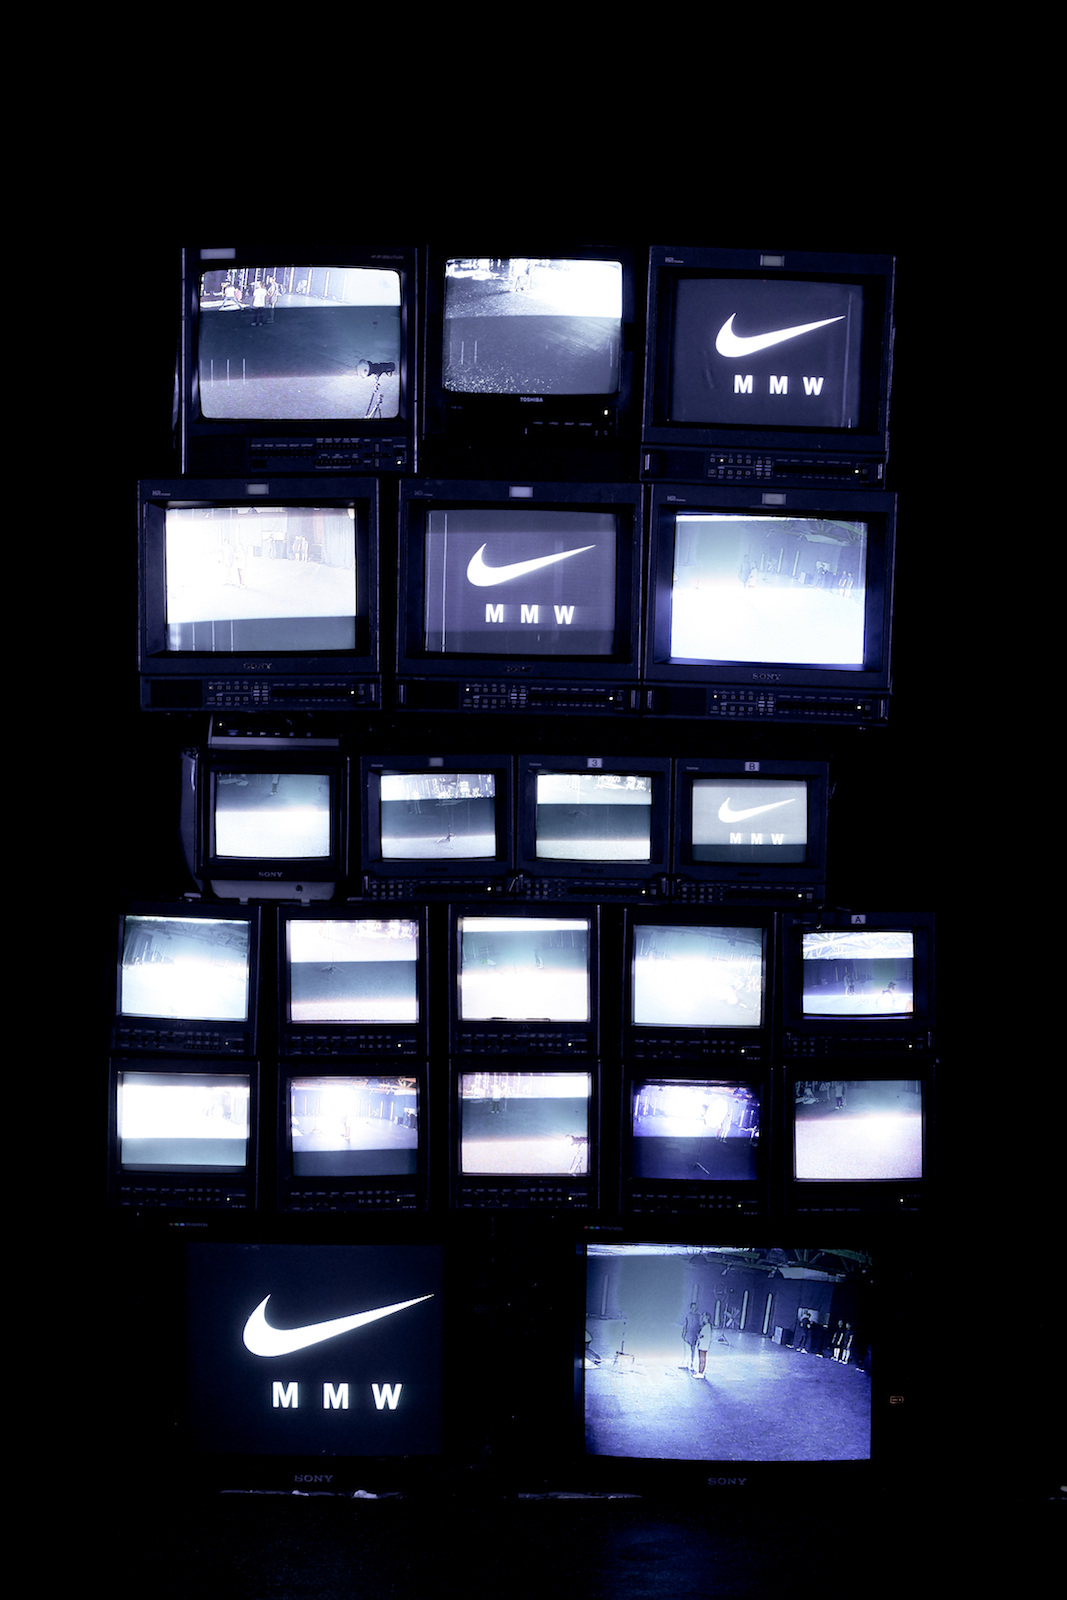 NIKE_Condition_Institute_MAUS.26302.jpeg